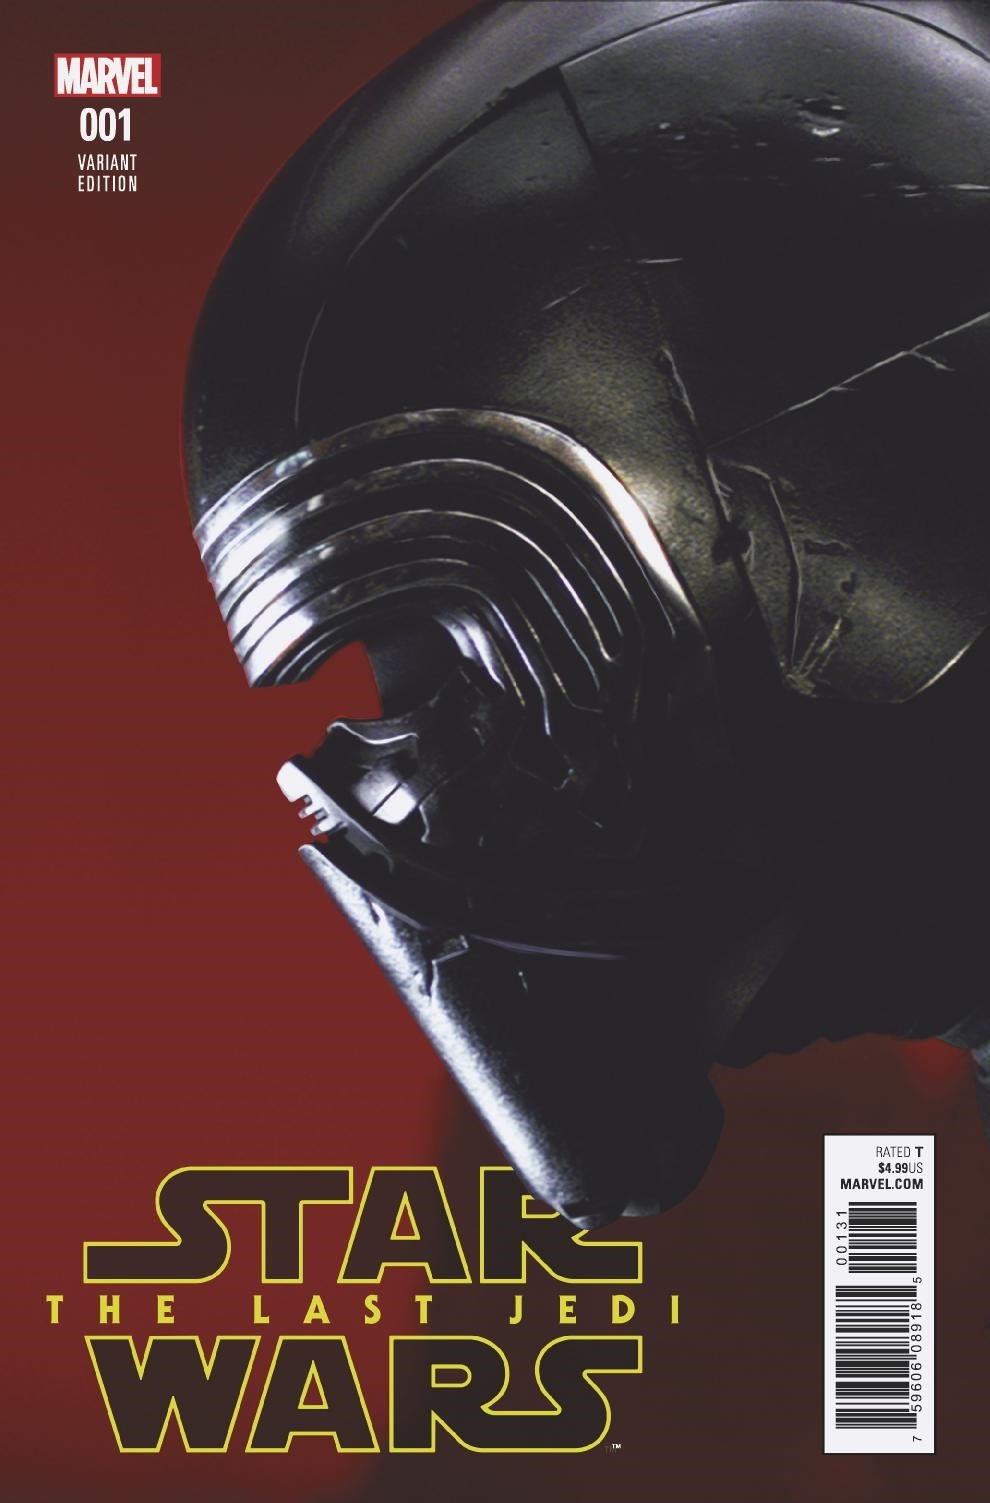 Star Wars: The Last Jedi #1 (Movie Variant Cover) (02.05.2018)